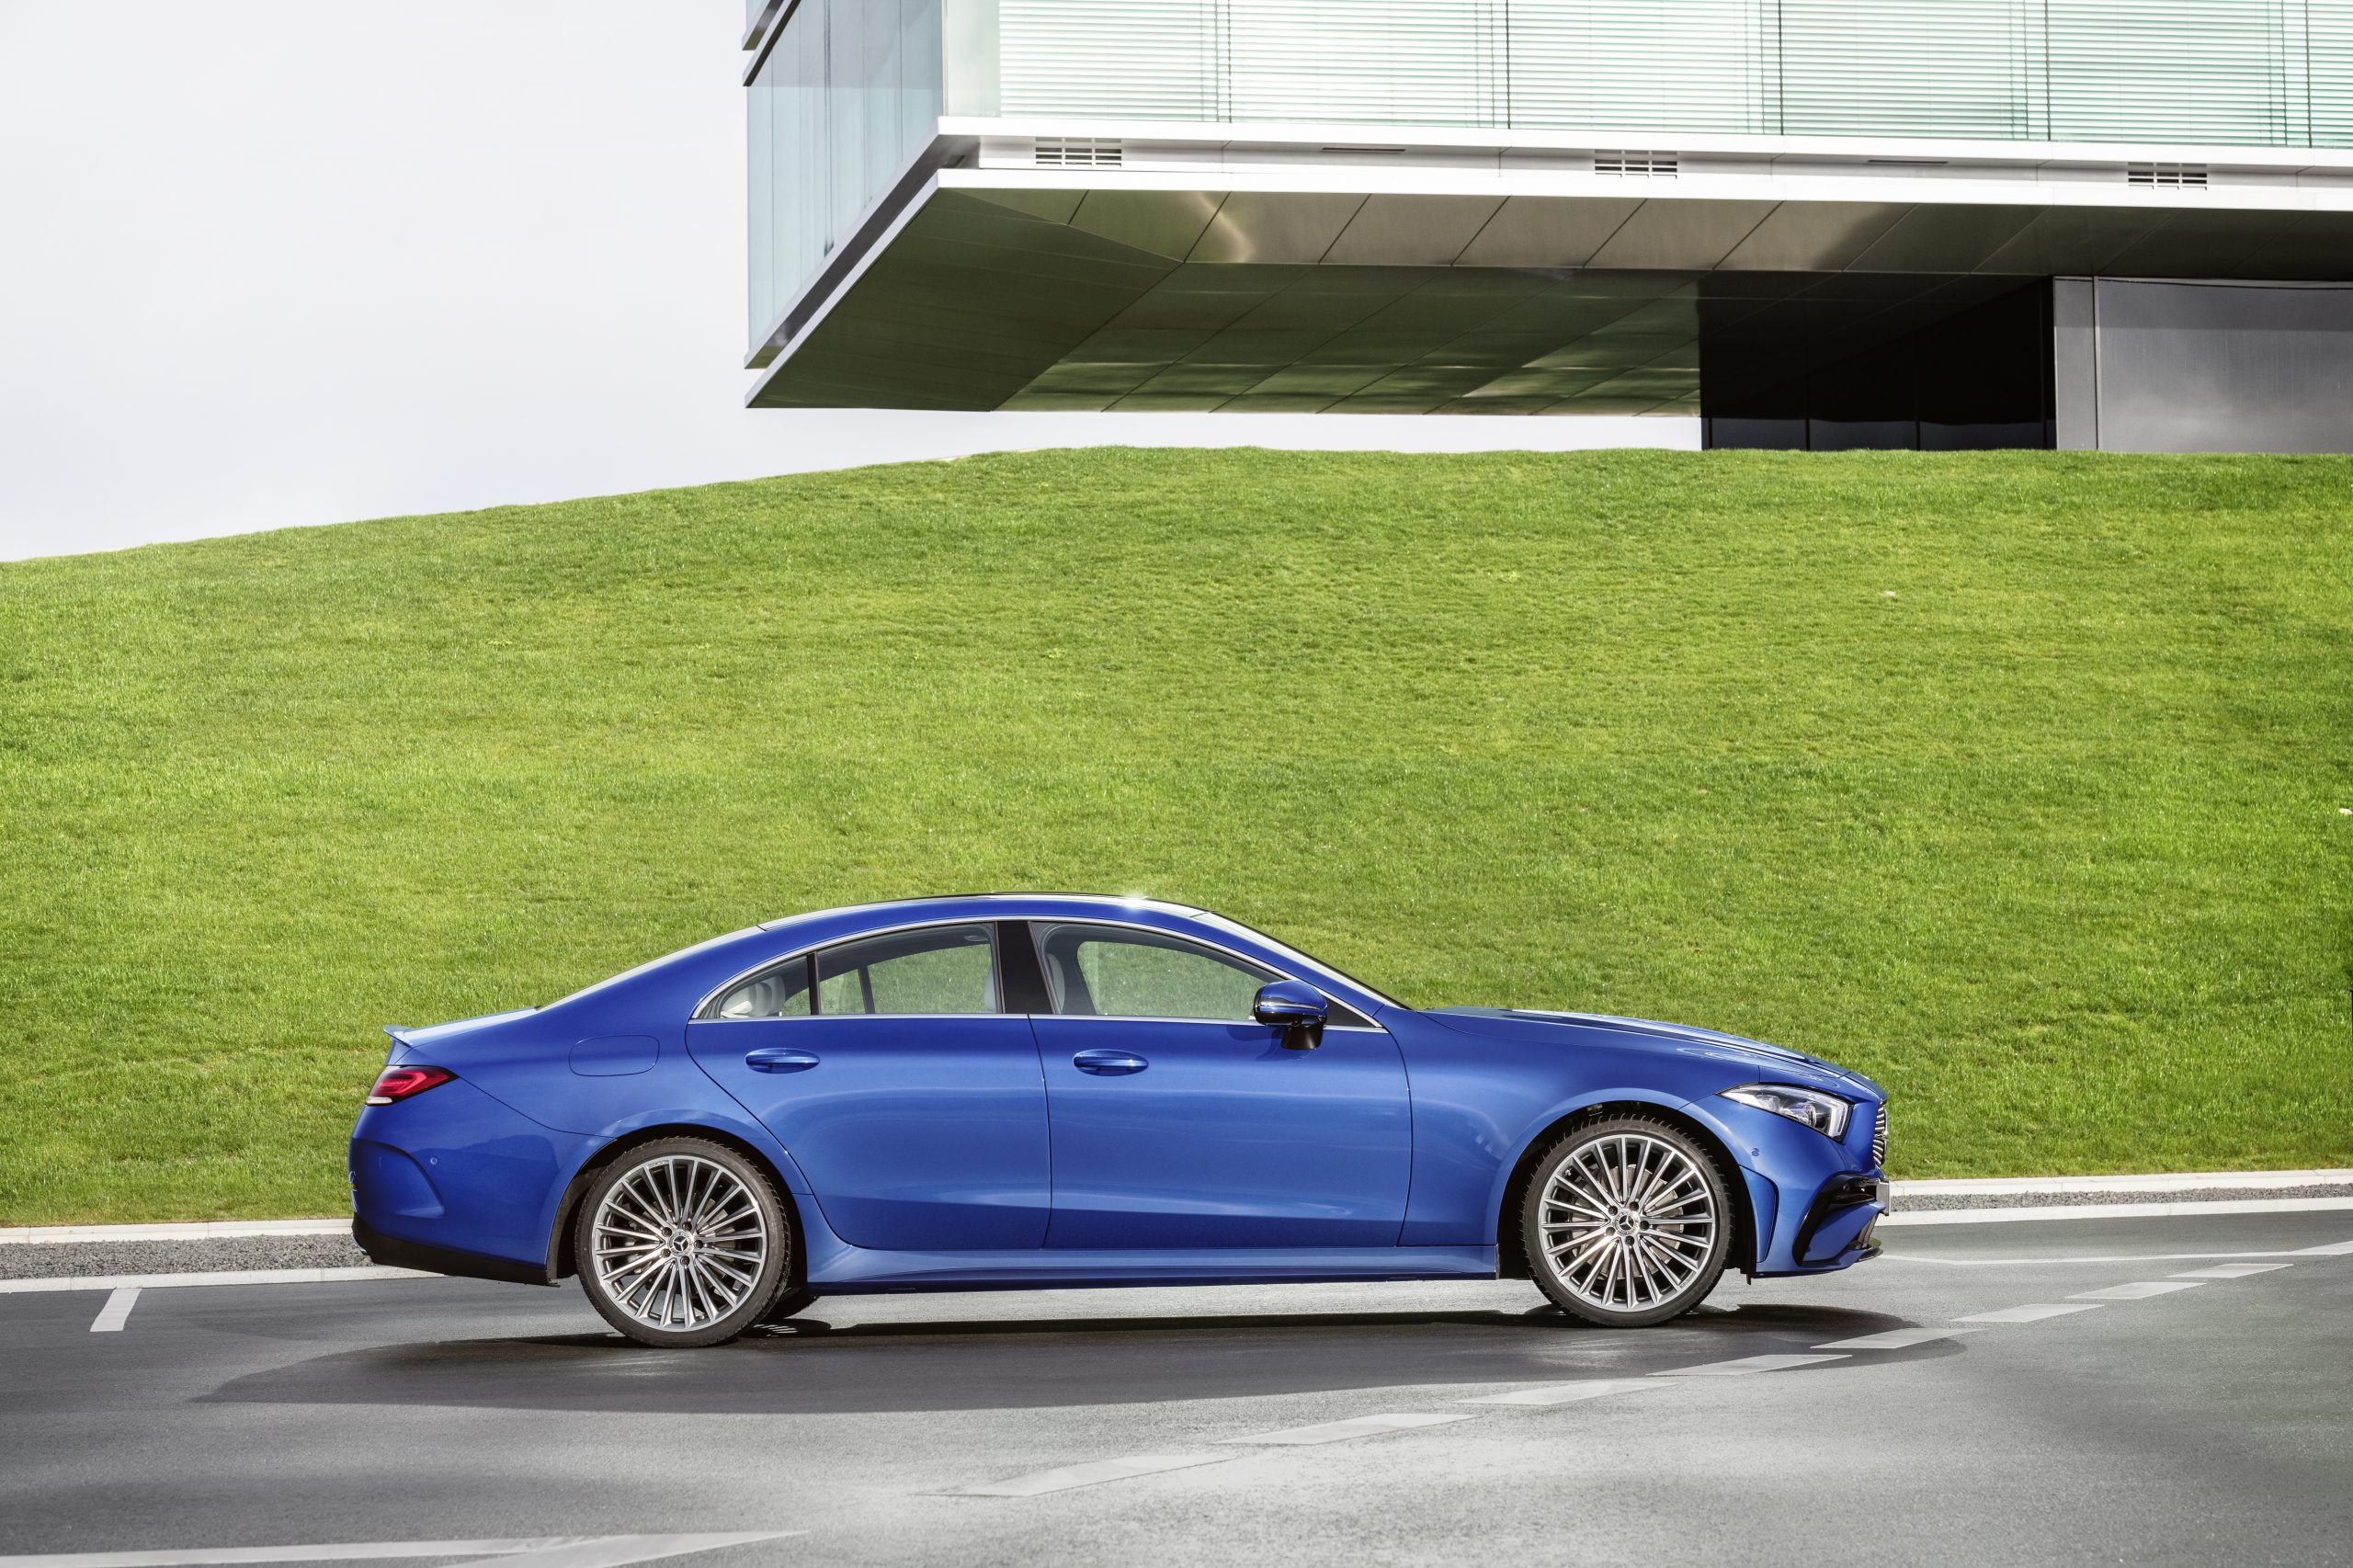 2021 Mercedes-Benz CLS 450 4Matic Coupé profile